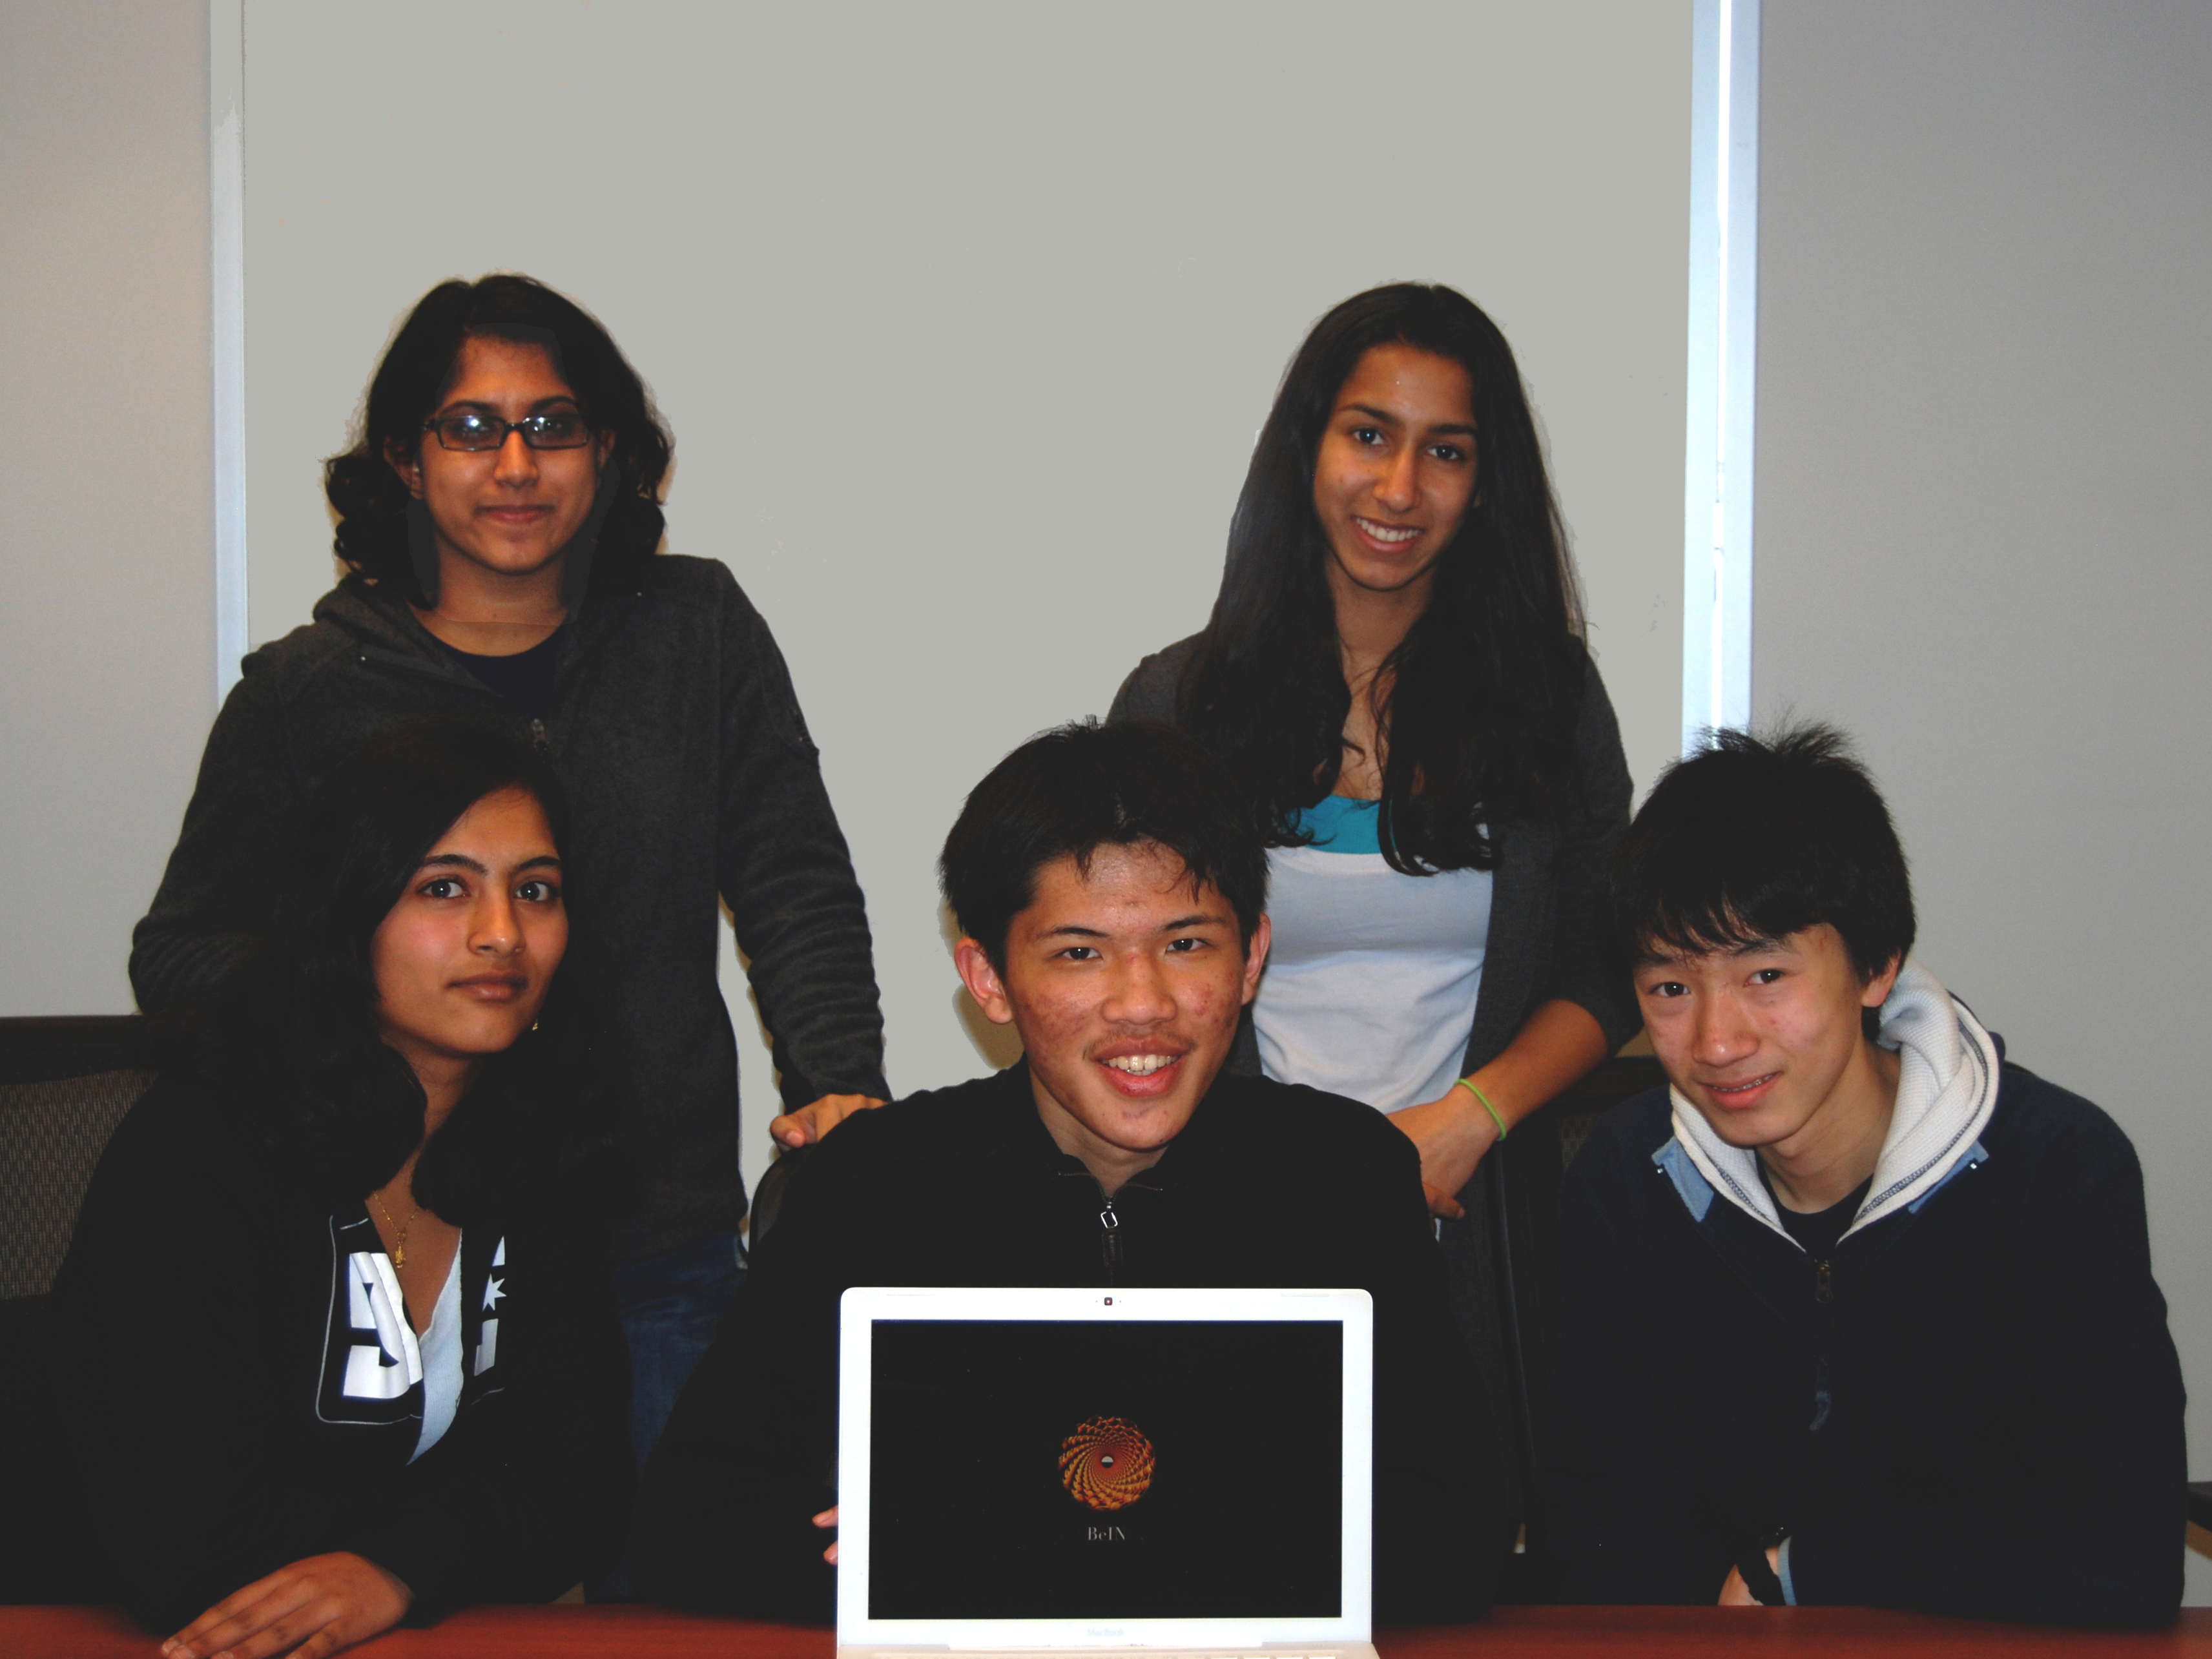 The student team from Monta Vista High School in Cupertino